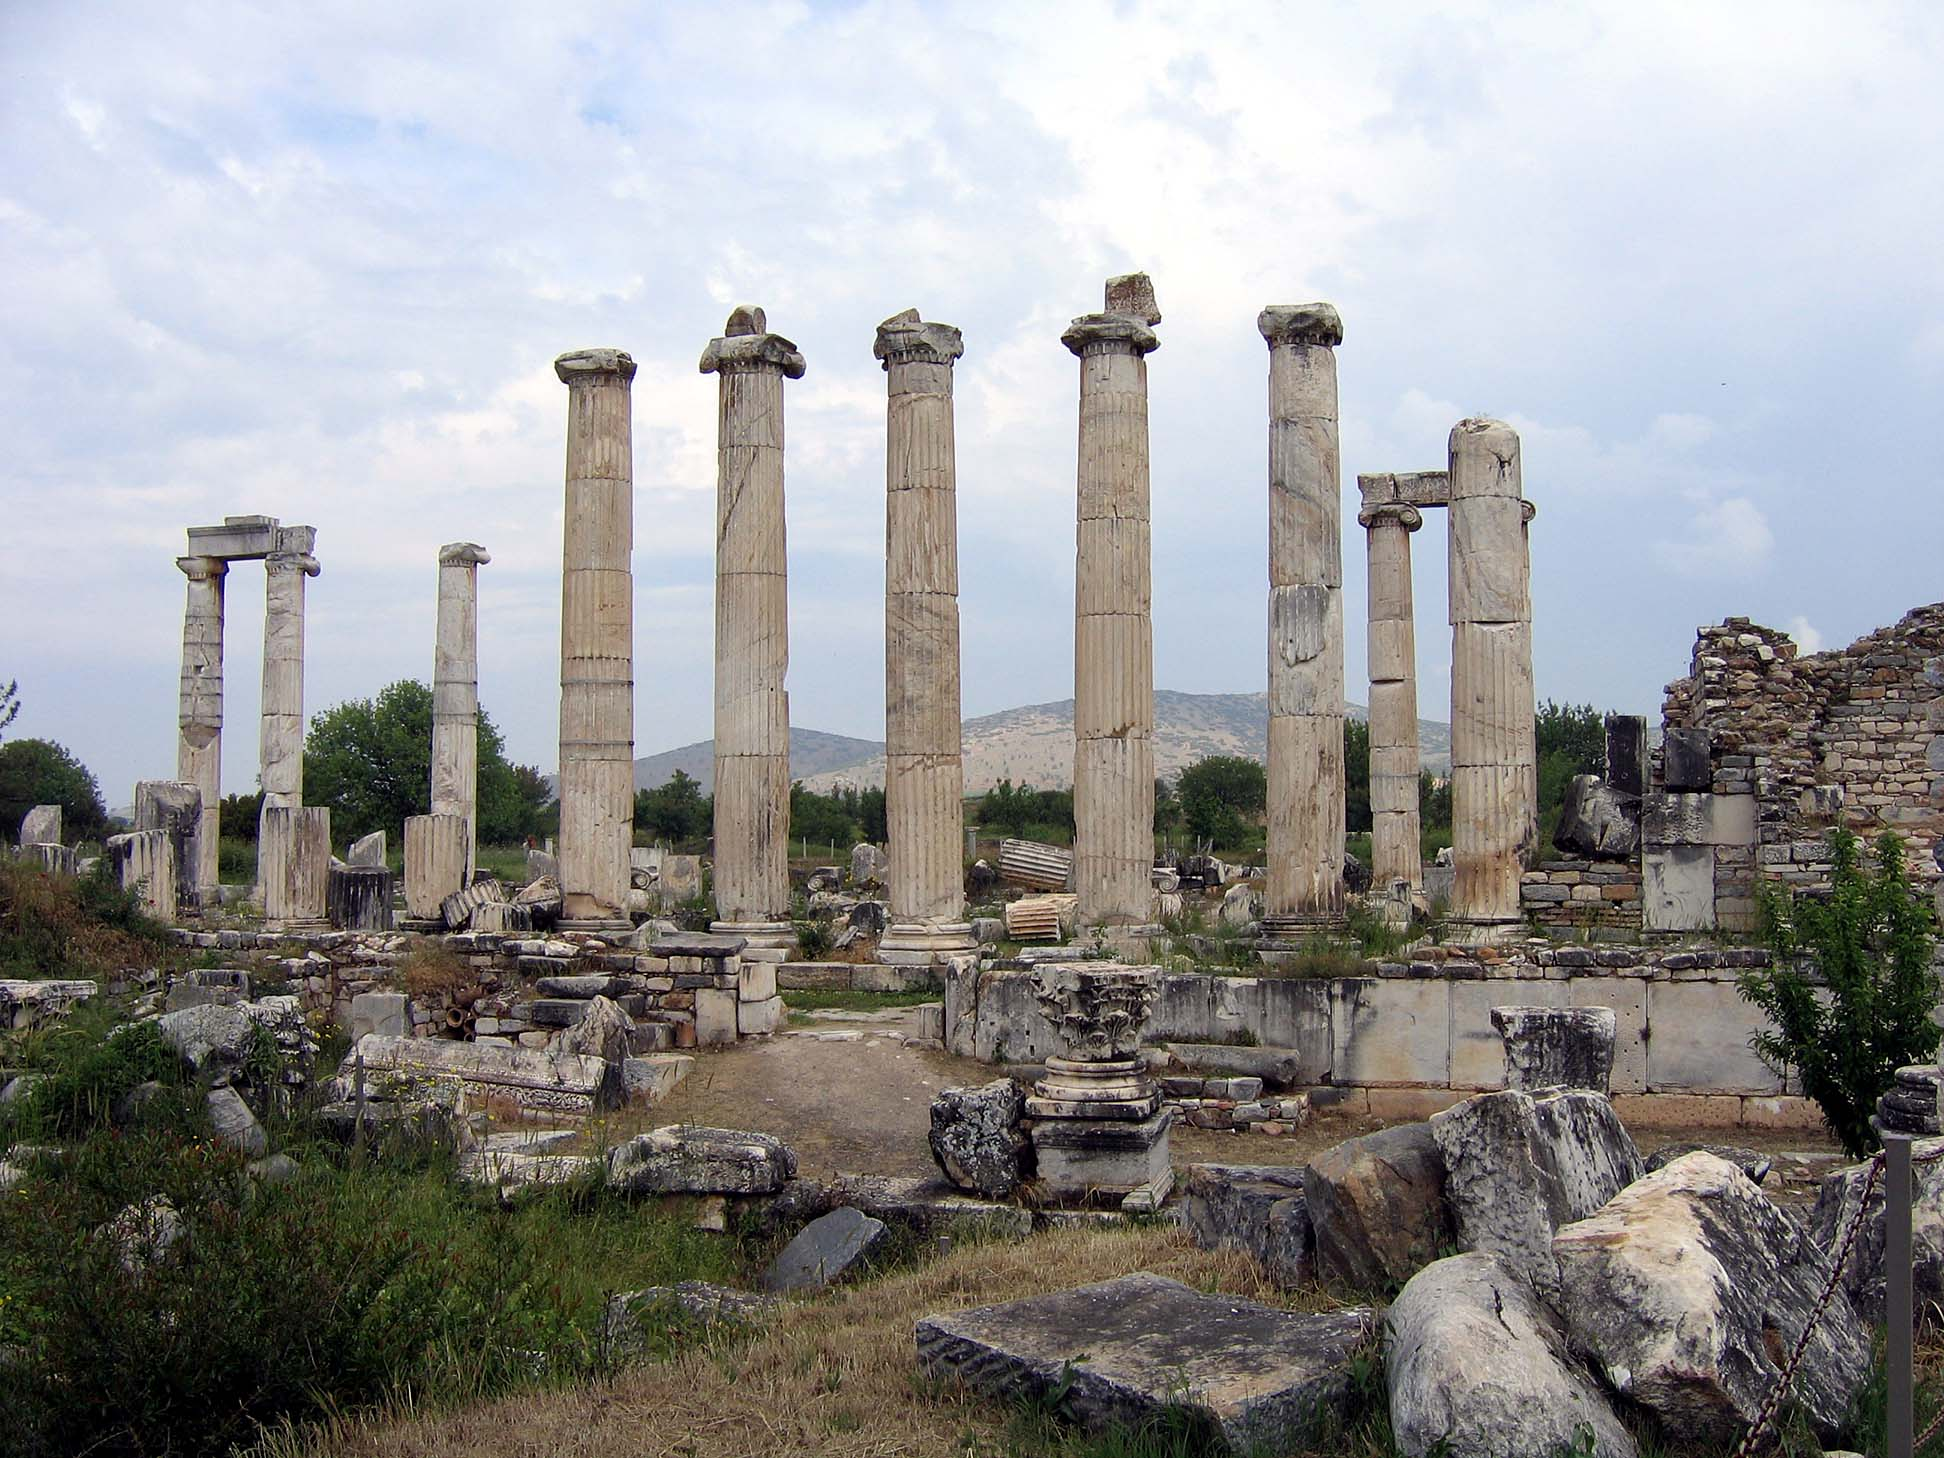 File:Aphrodisias temple22.jpg - Wikipedia